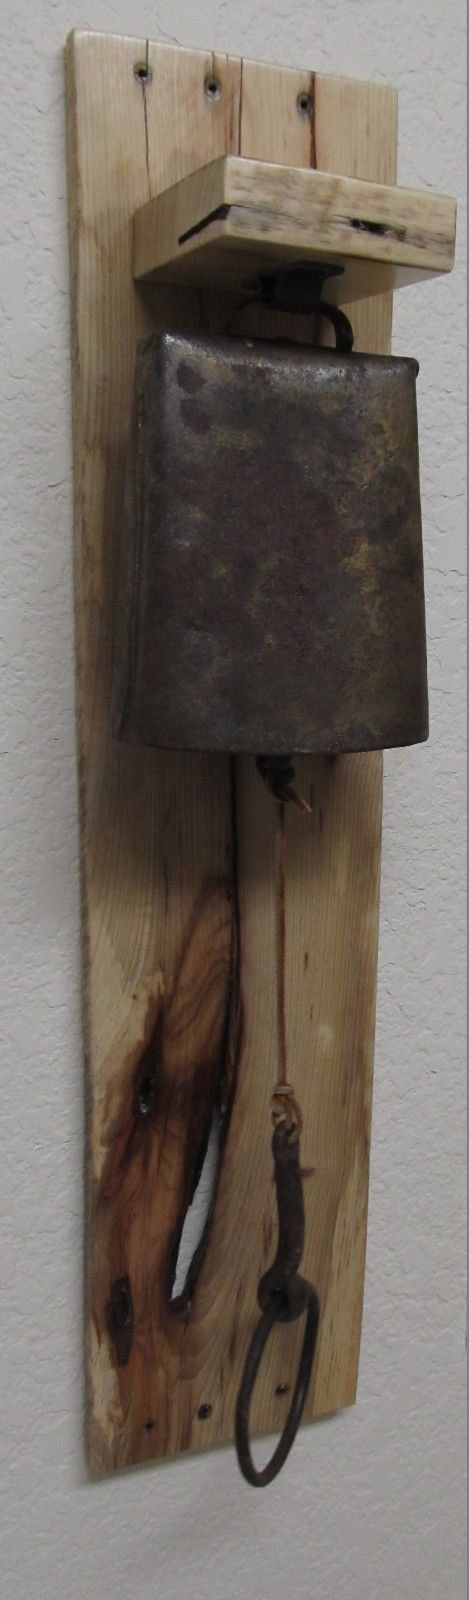 A Vintage Cow Bell on a very cool and rustic by RedeemWood on Etsy